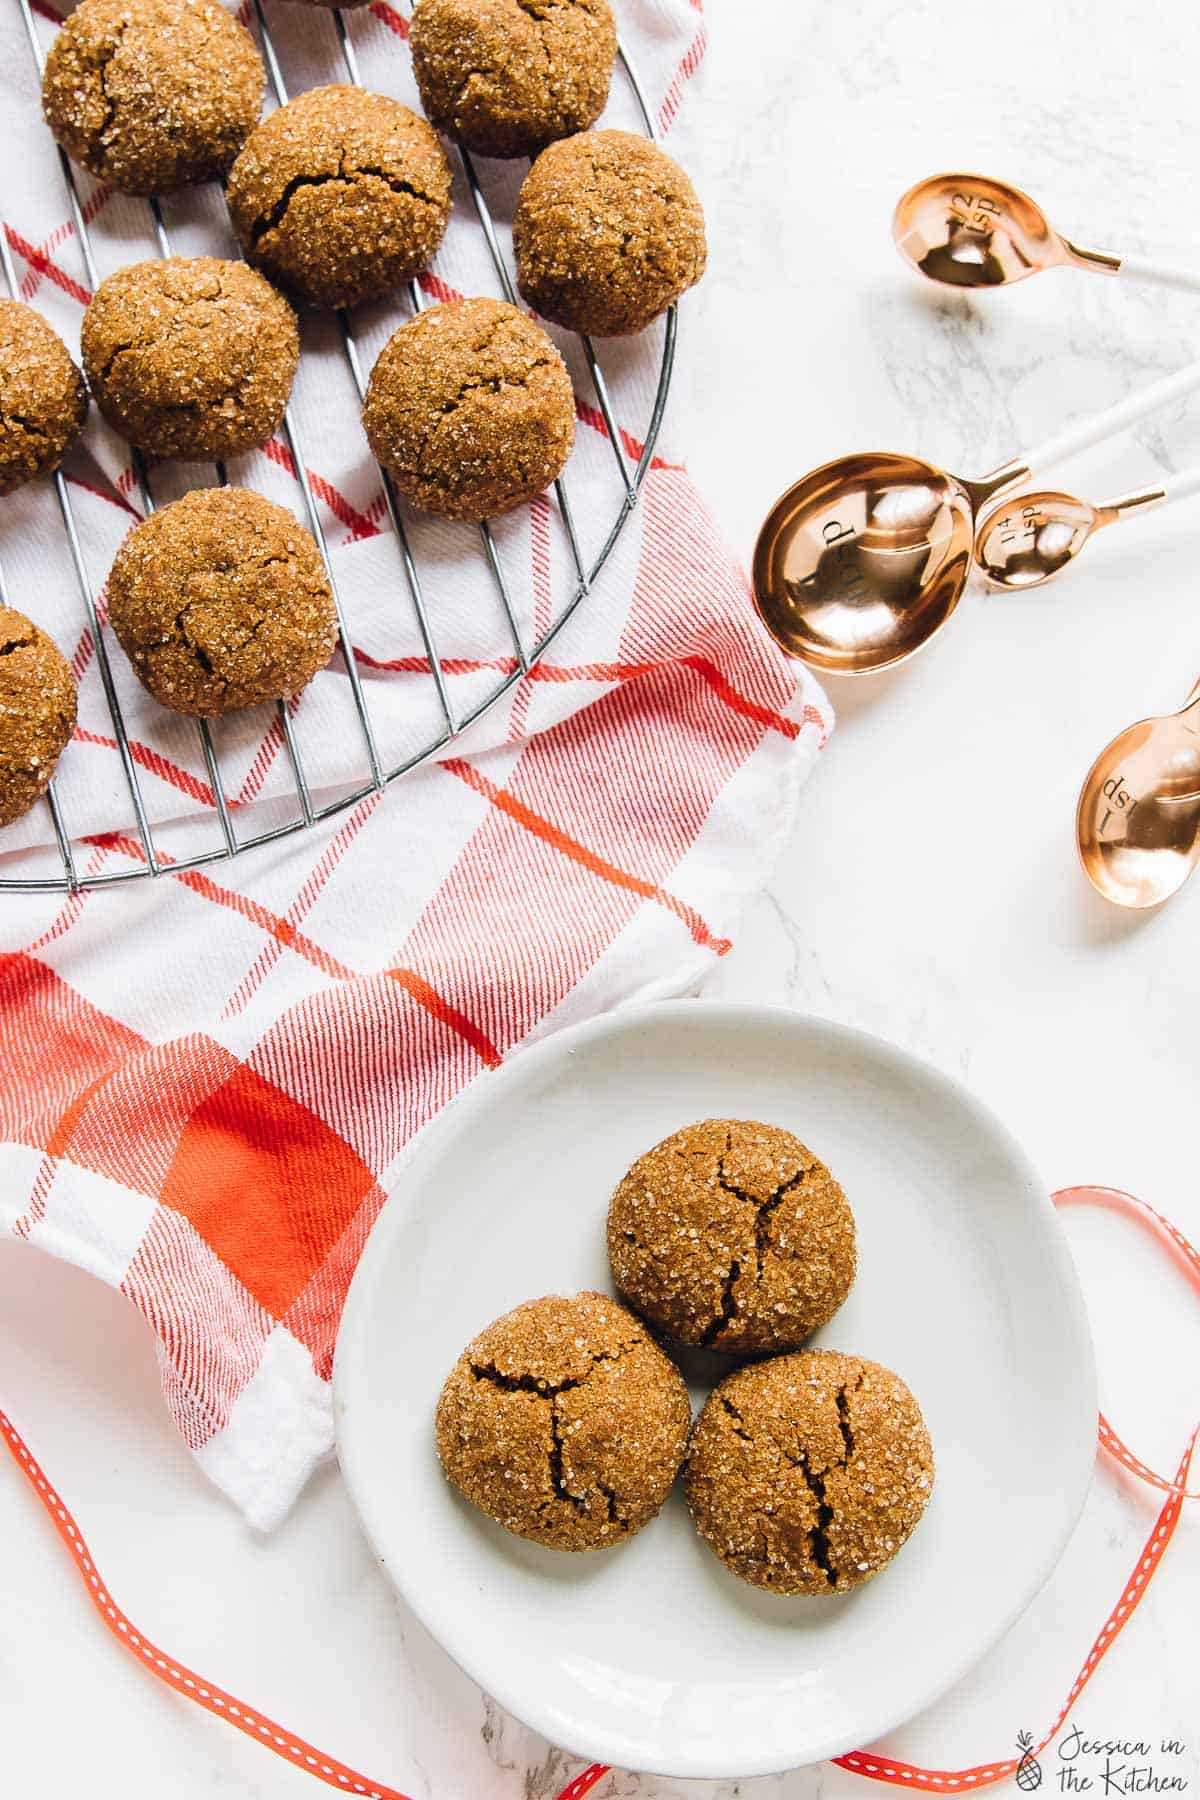 Top down view of molasses cookies on a wire rack.